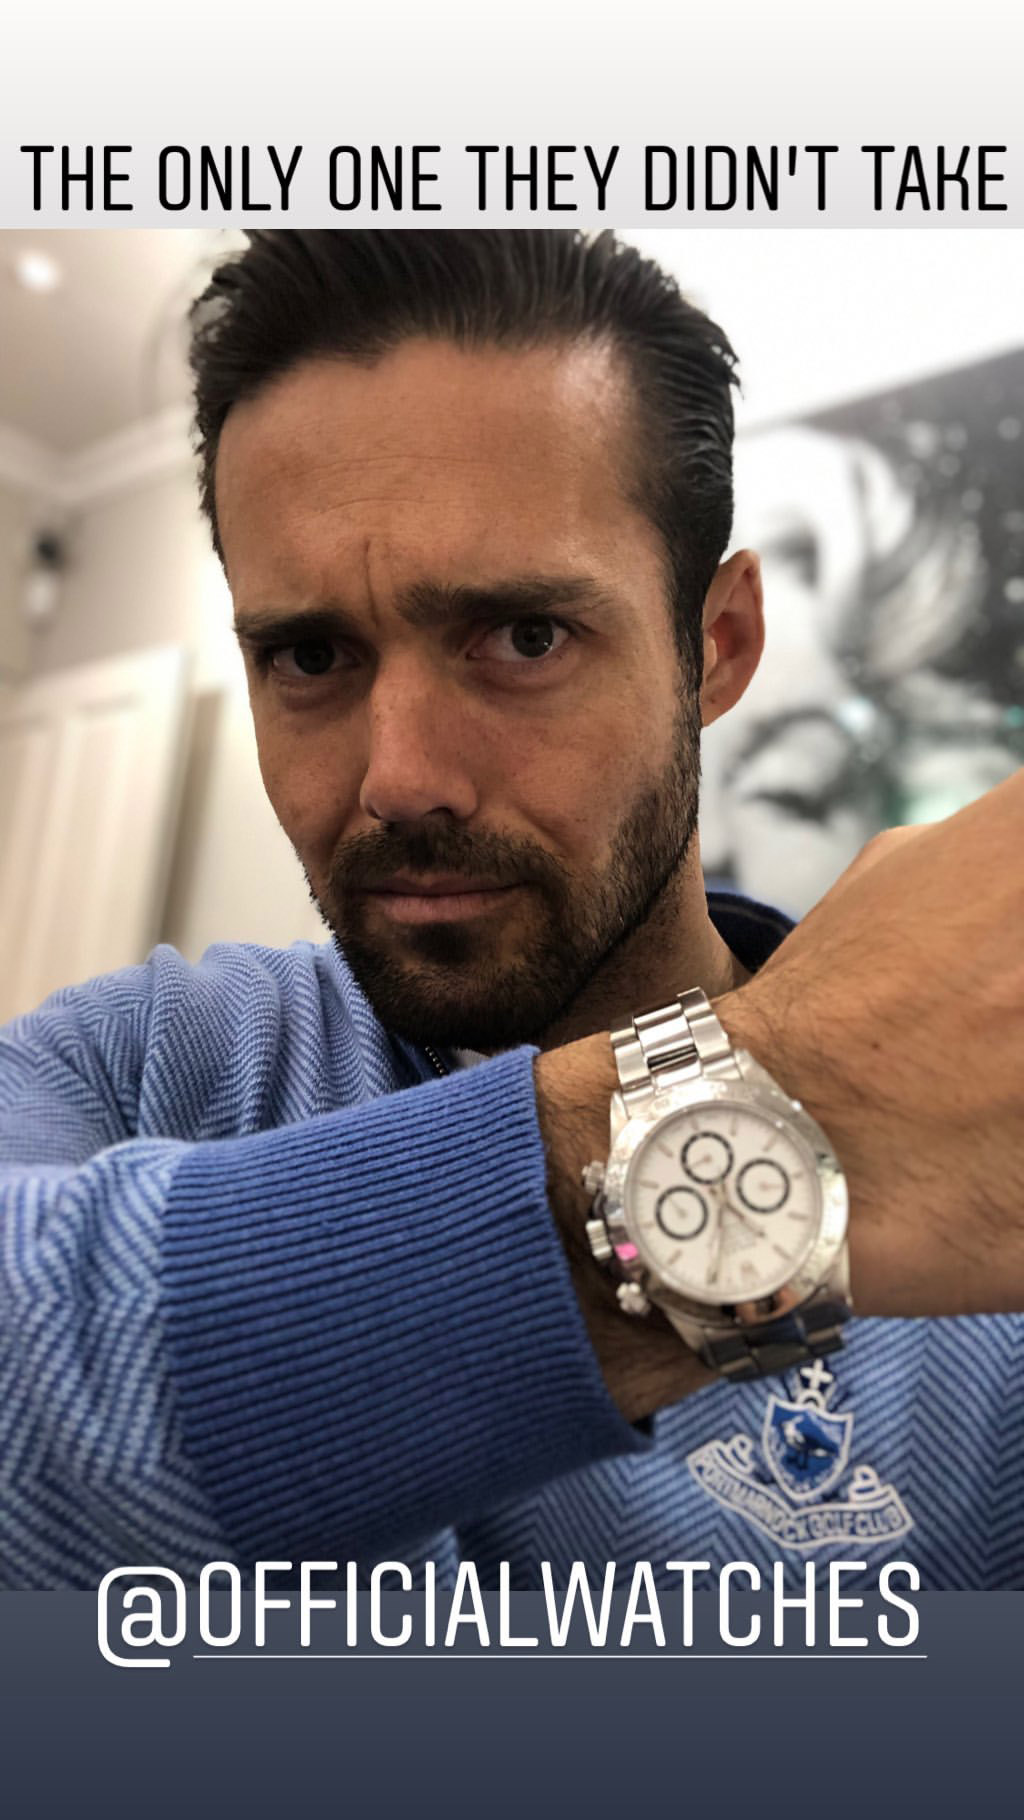 Spencer Matthews outside The Hour House on Duke Street, Westminster, where moped-riding armed robbers targeted the luxury watch shop, making off with items stolen from the smashed shop window.